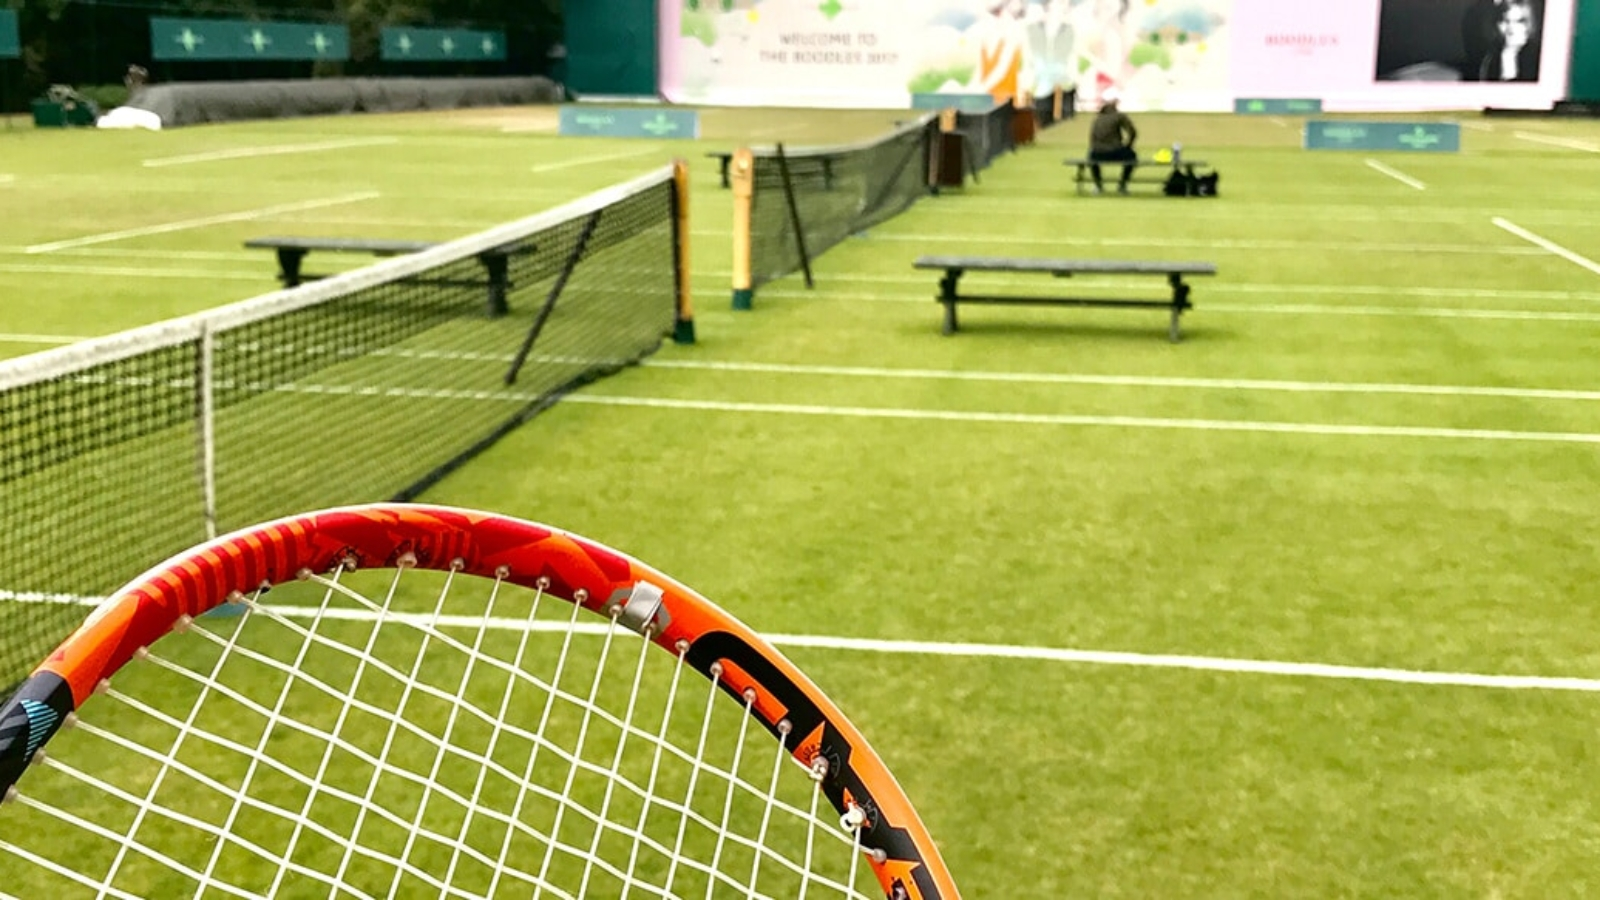 The Ultimate Tennis Court Guide